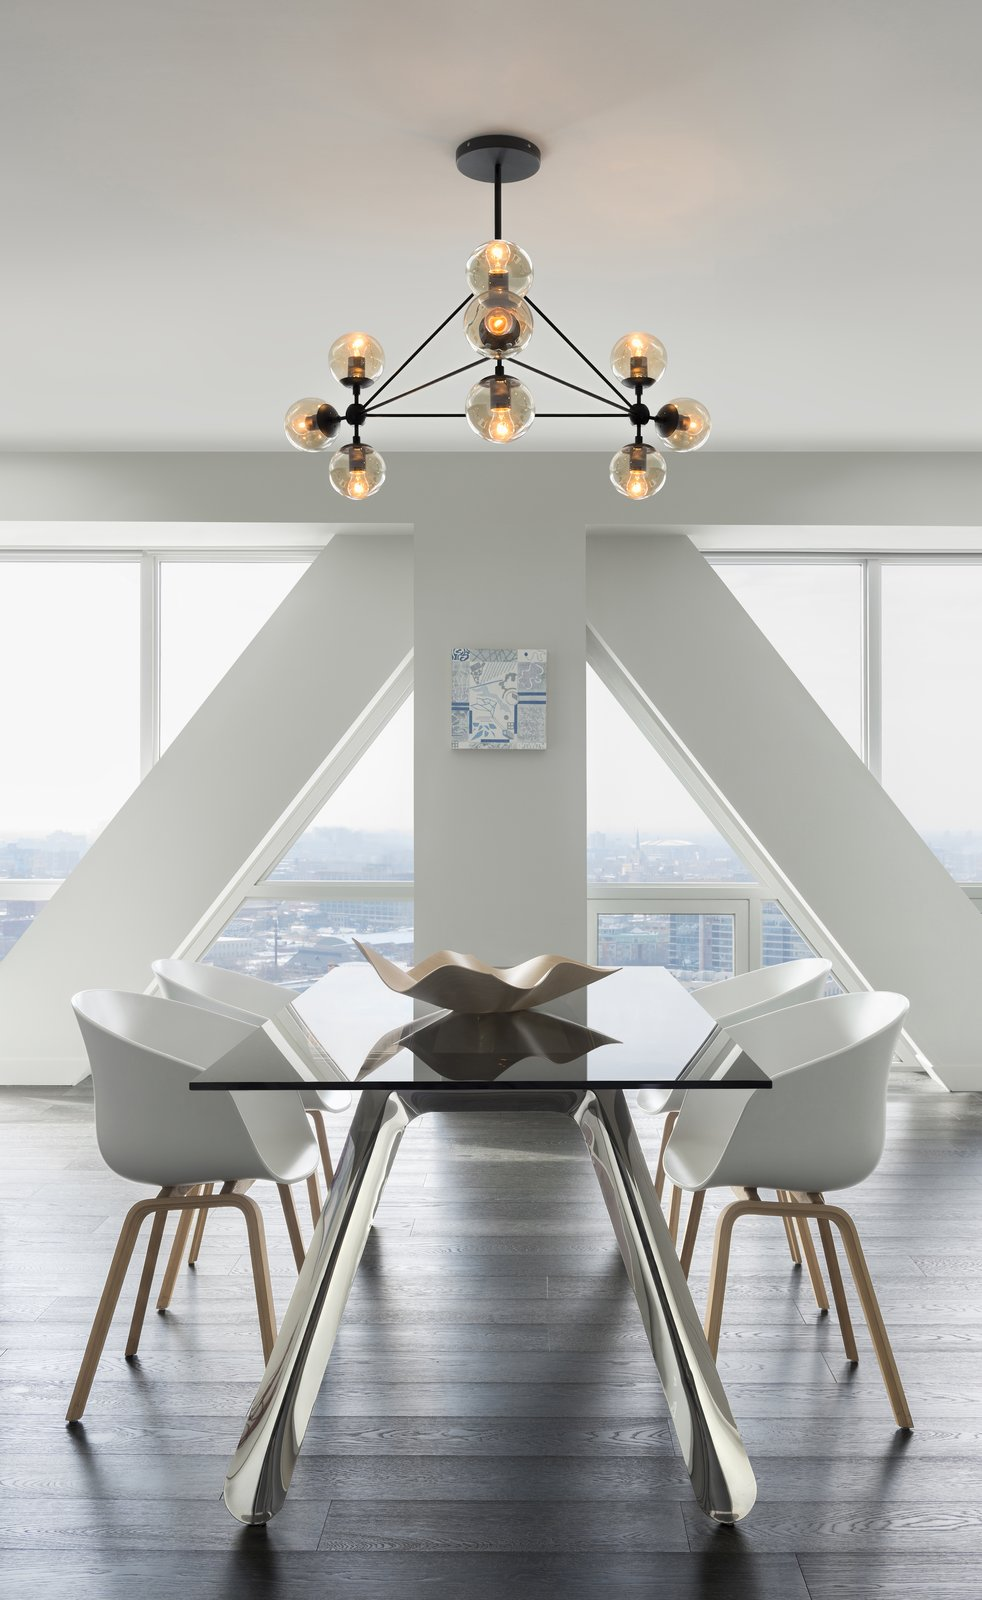 The geometric construction of the Bola suspension light gives this modern dining space bold contrast  Kitchen & Dining